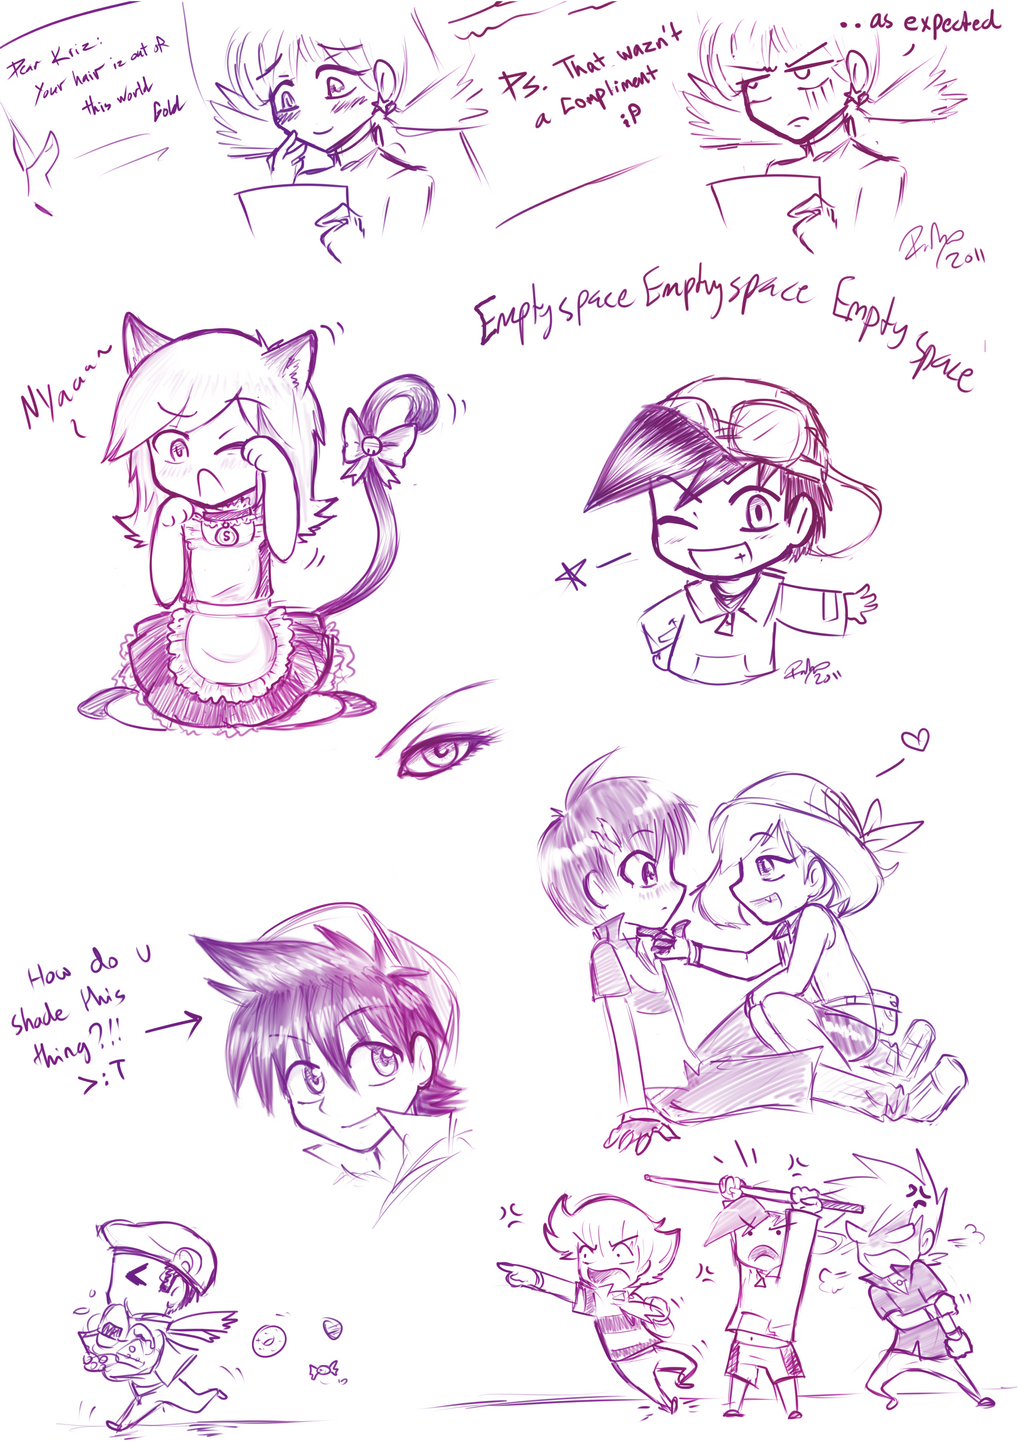 Random Pokespe DigiSketch by firehorse6